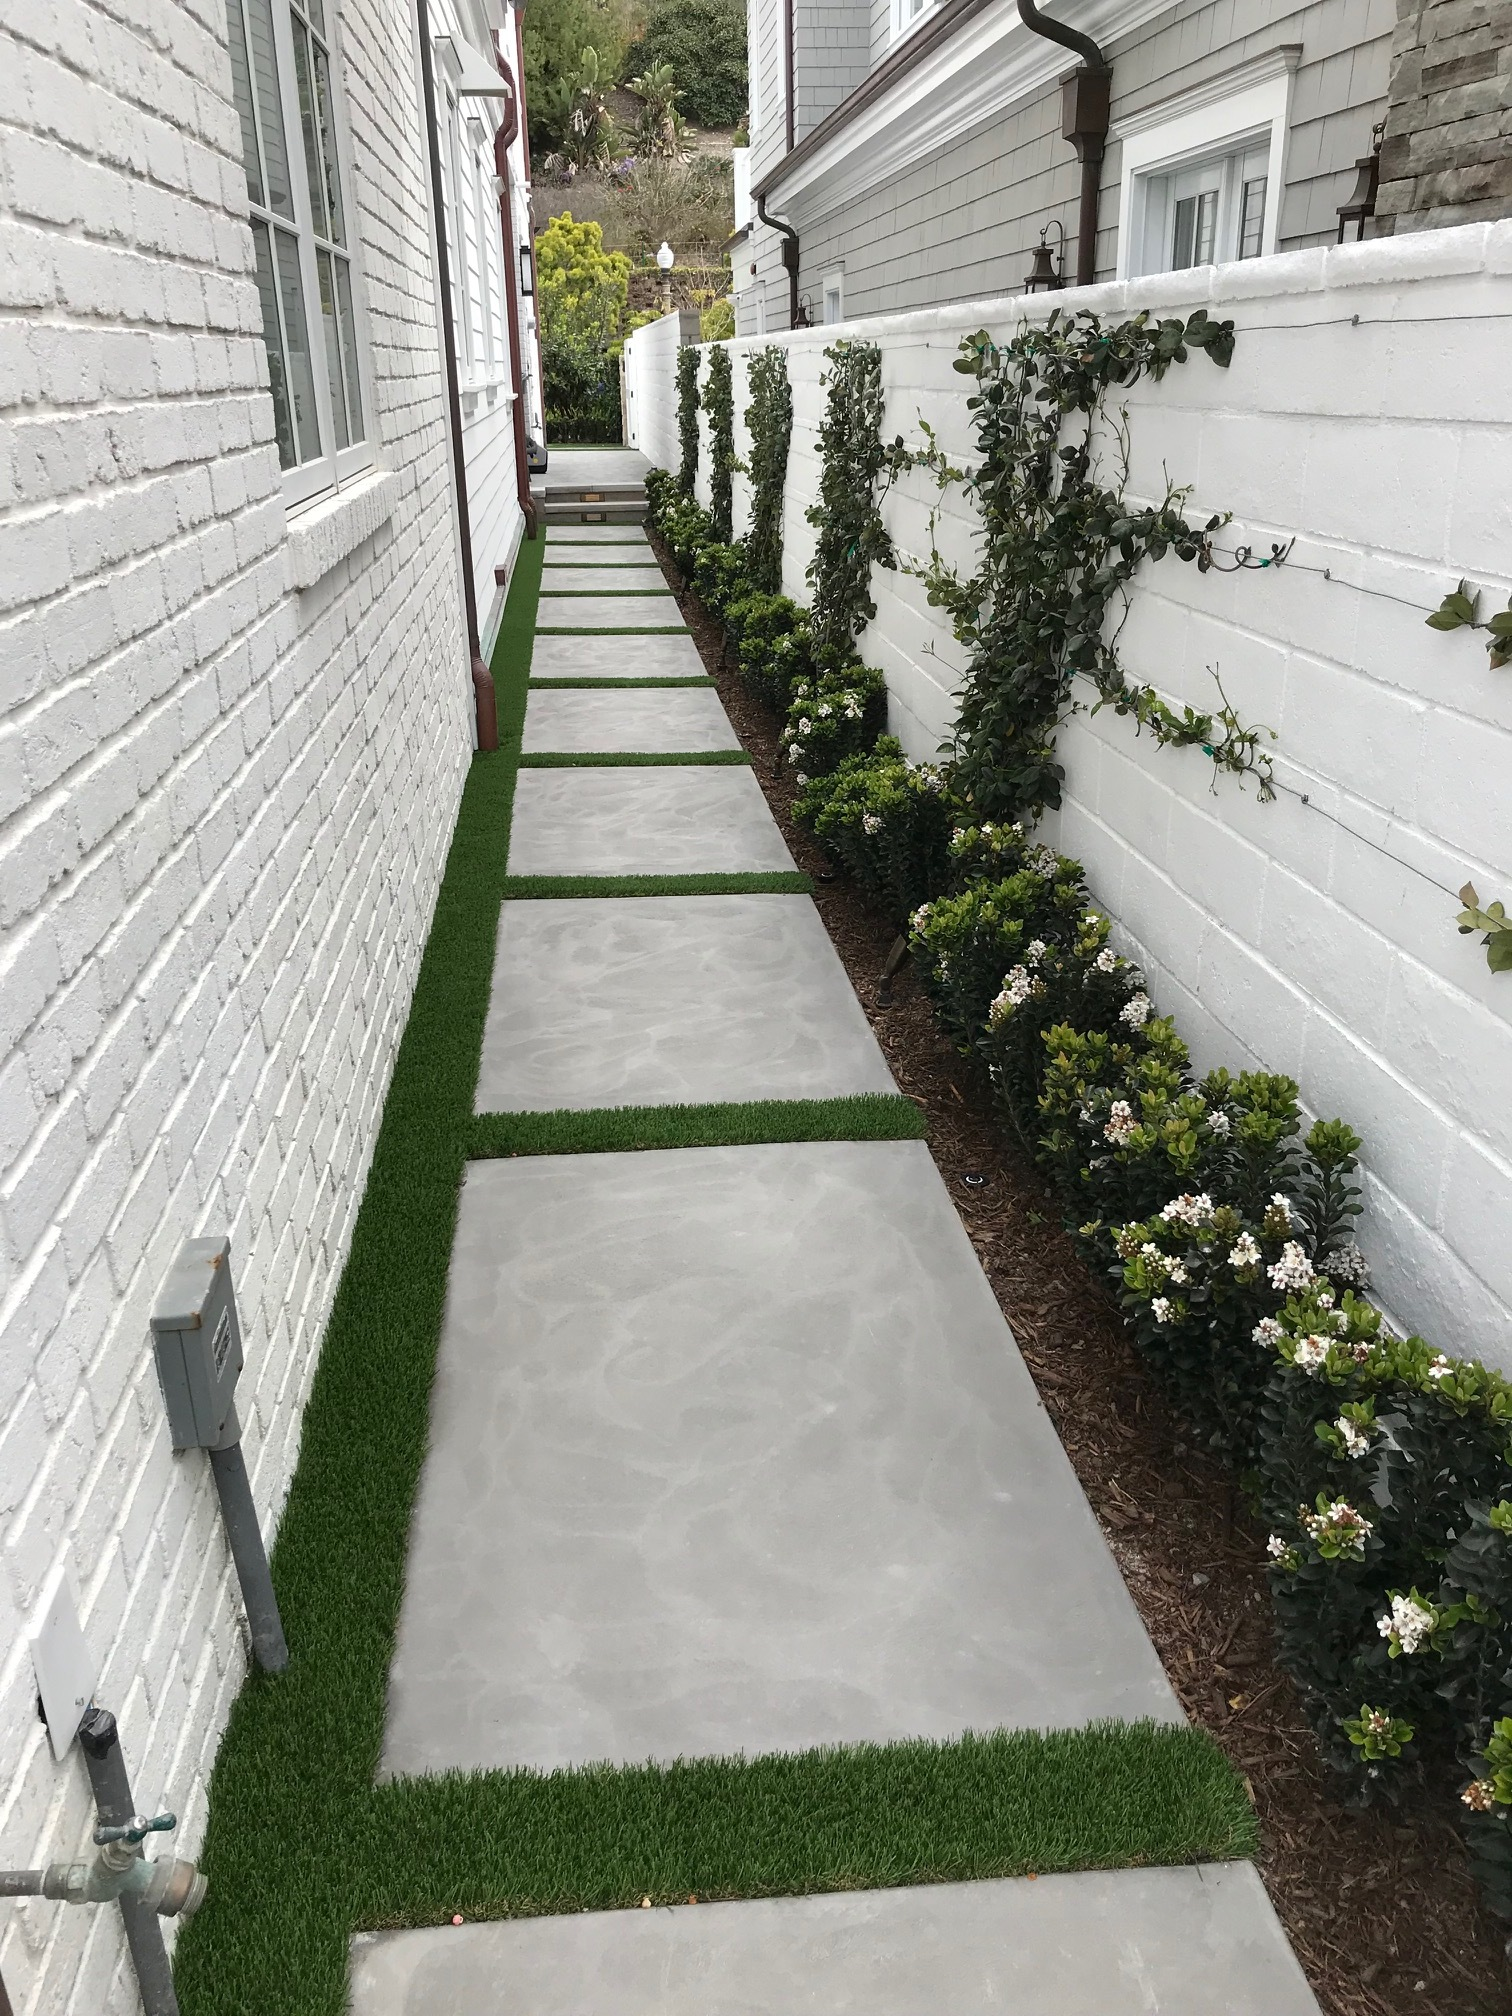 Climbing vines done by DL Hickman and Son, one of the leading landscape contractors in Dana Point, California, United States